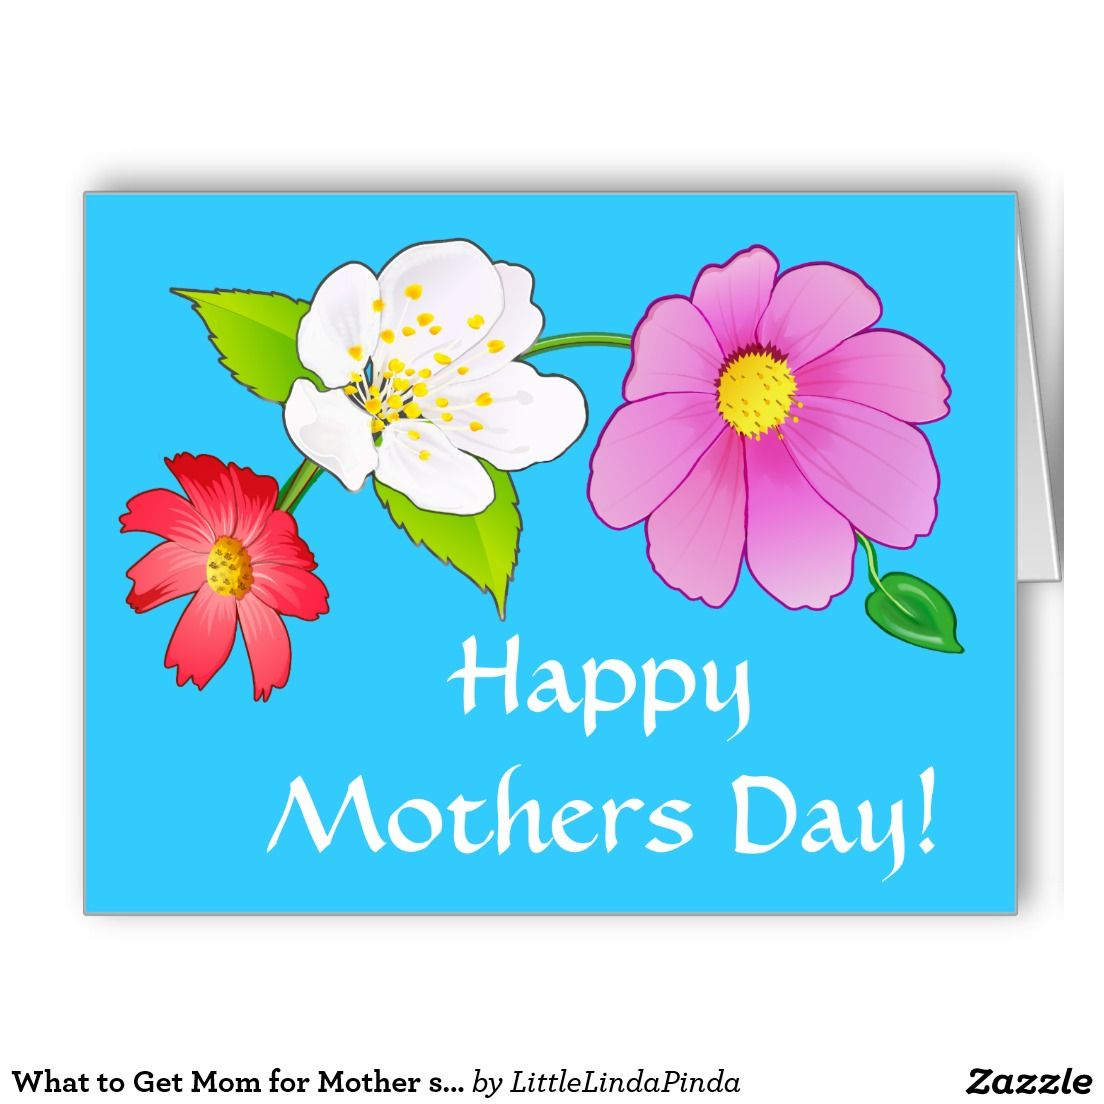 BIG Happy Mothers Day Cards for mom.  PERSONALIZED for Mothers Day Gifts with Tropical Hawaiian Flowers. Cheap Mothers Day Gifts: http://www.zazzle.com/what_to_get_mom_for_mother_s_day_card_and_mug-137557386180764063?type=biggreetingcard&design.areas=%5Bcard_85x11_outside_print_horz_front%2Ccard_85x11_inside_print_horz_side1%2Ccard_85x11_inside_print_horz_side2%2Ccard_85x11_outside_print_horz_back%5D&view=113378404341044548&rf=238147997806552929  Mothers Day Presents Linda: 239-949-9090